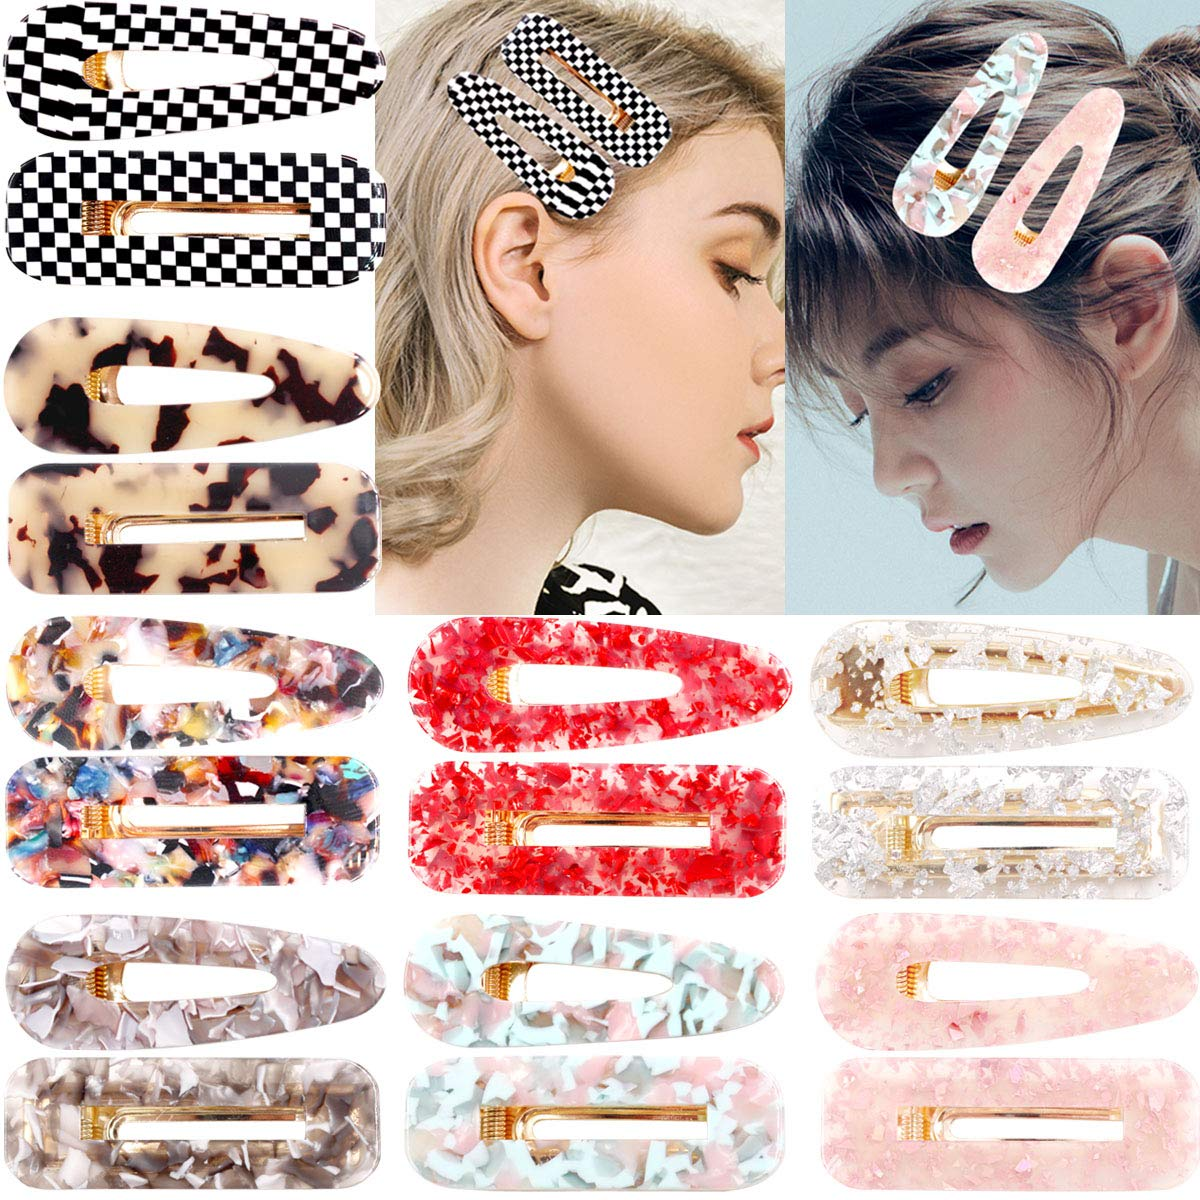 Top 9 Best Baby Hair Clips Reviews in 2019 7